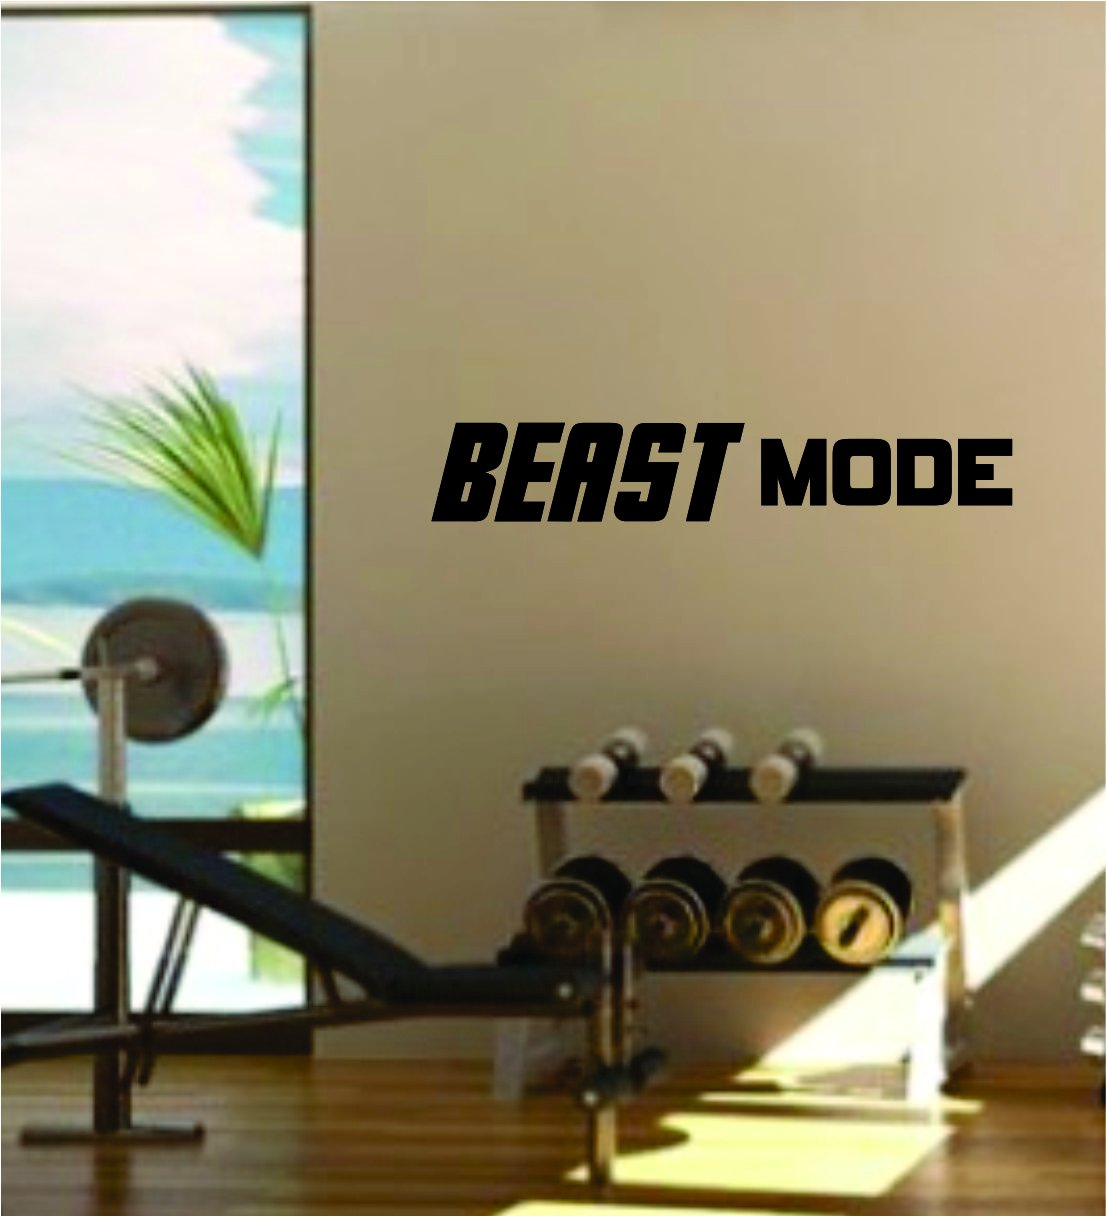 Beast Mode v2 Quote Fitness Health Work Out Gym Decal Sticker Wall Vinyl Art Wall Room Decor Weights Motivation Inspirational by Boop Decals (Image #1)